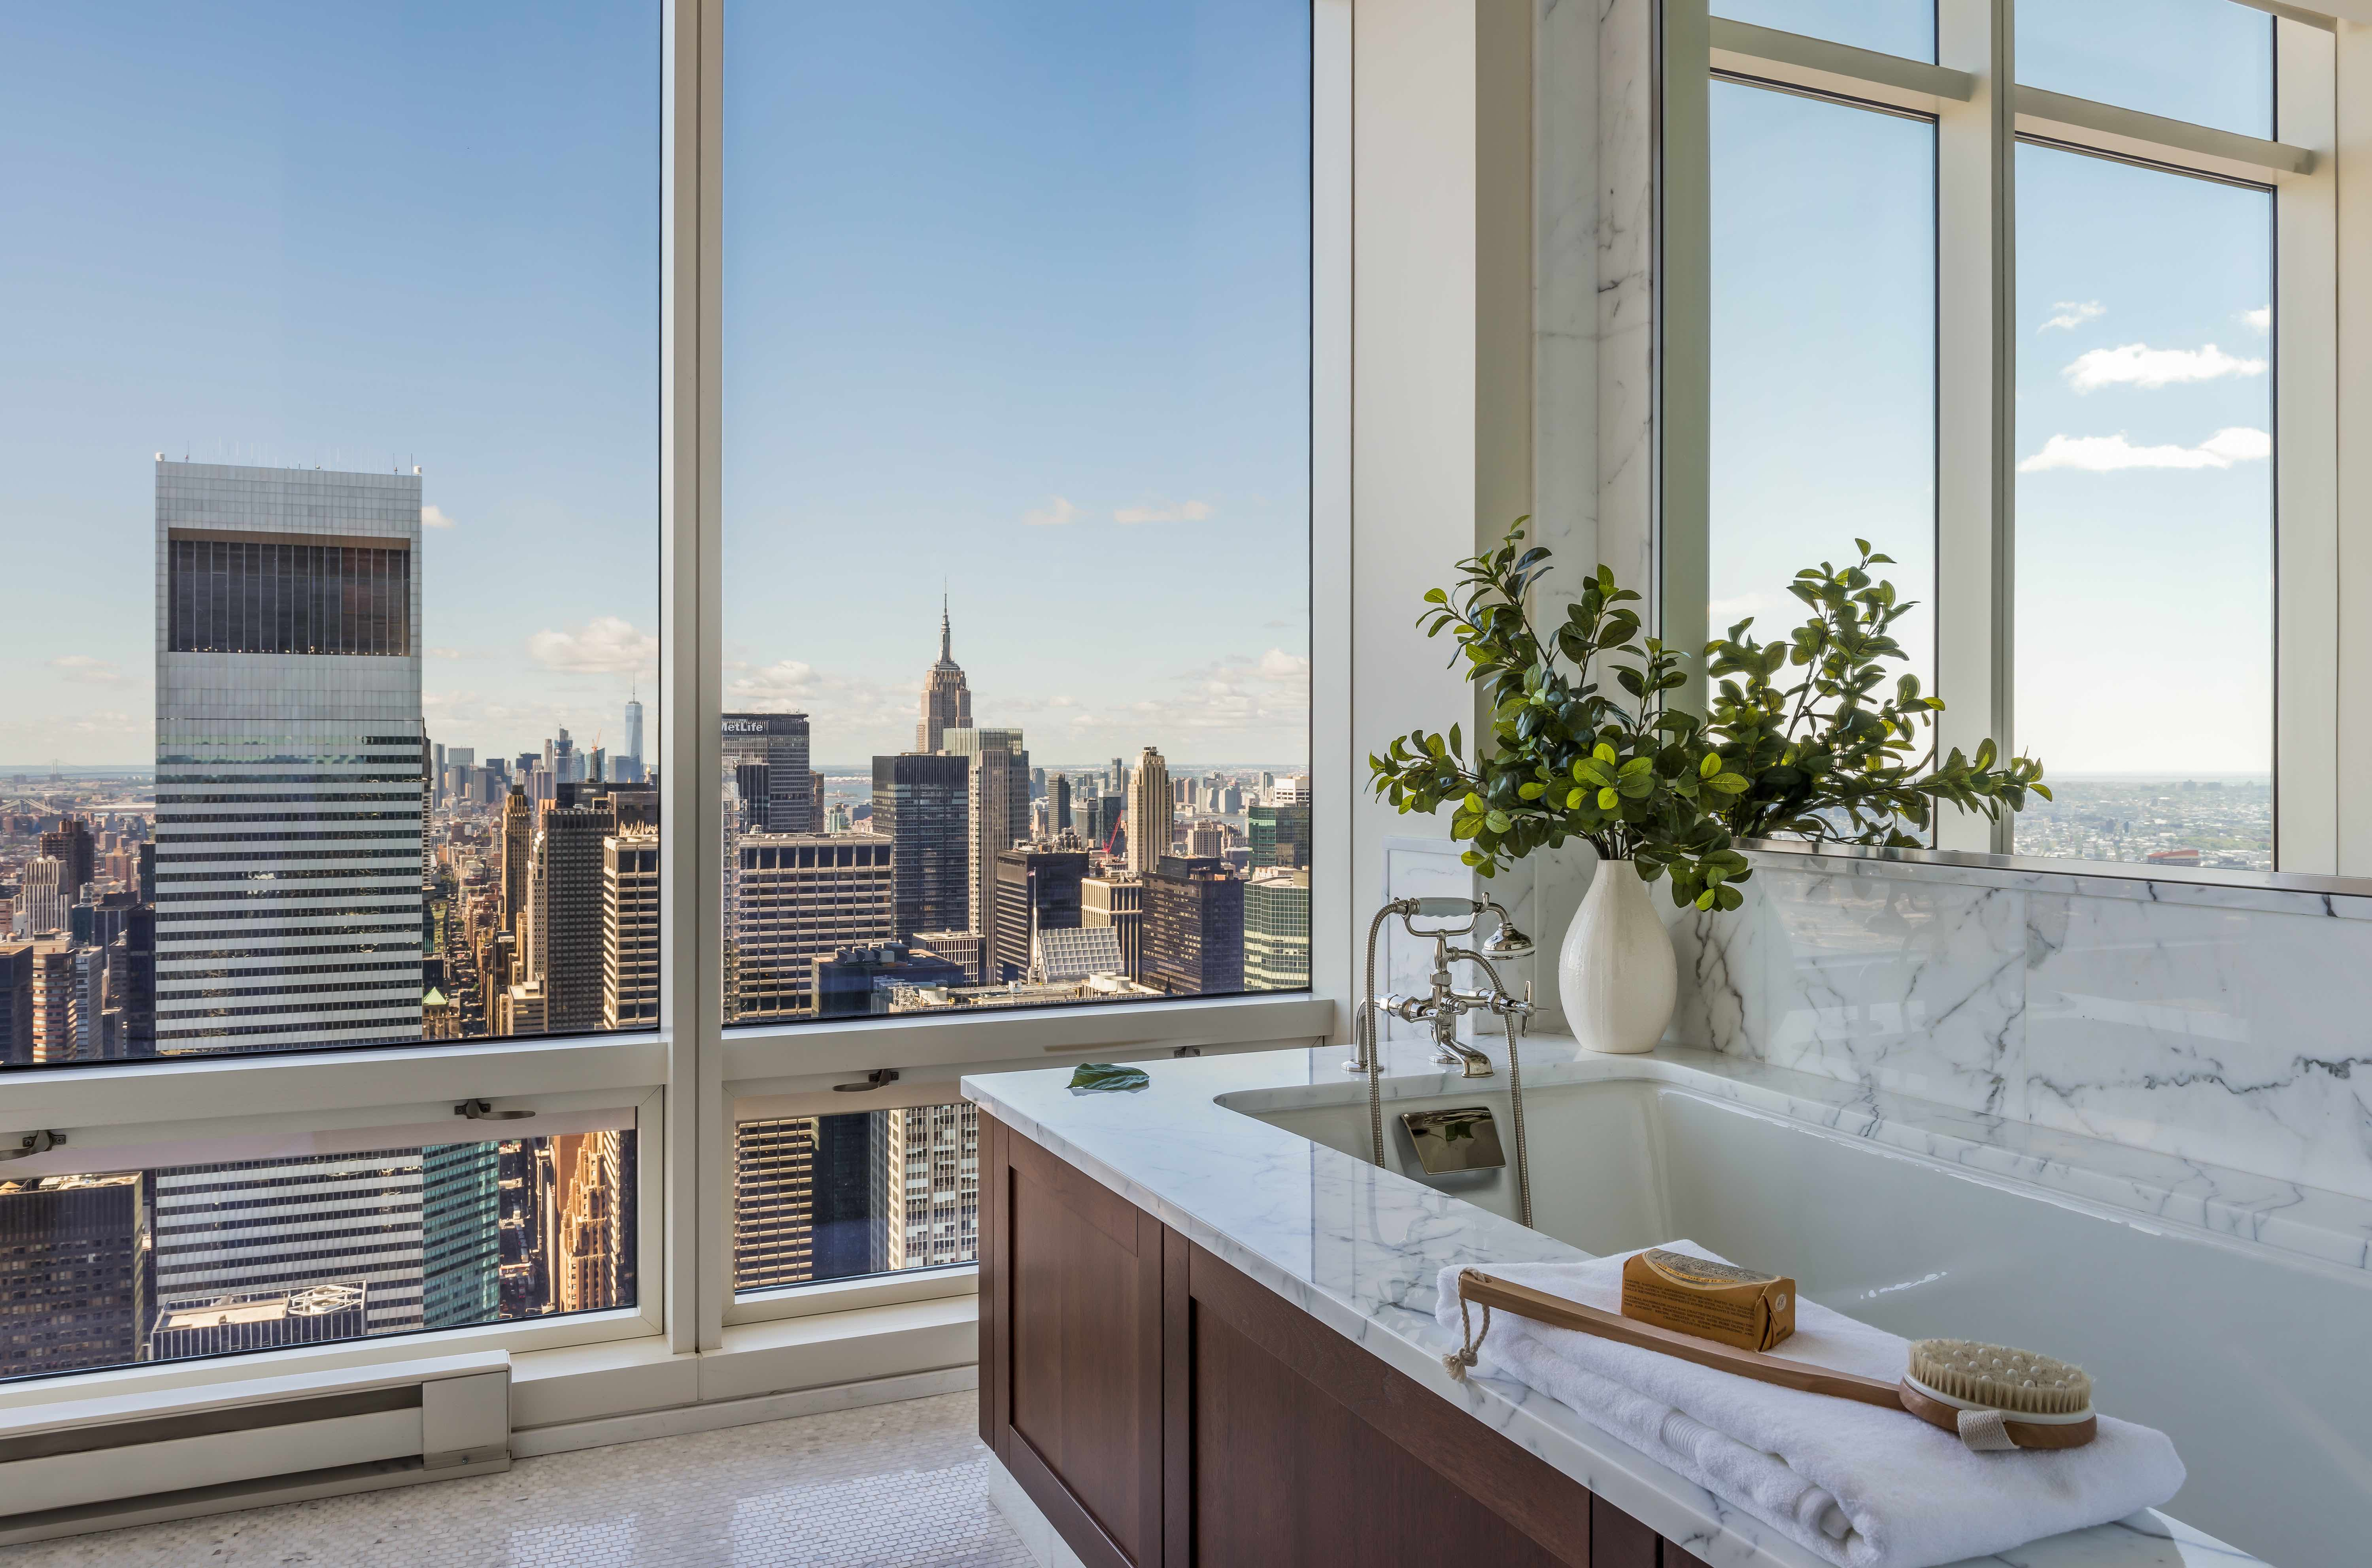 New York bathrooms with a view